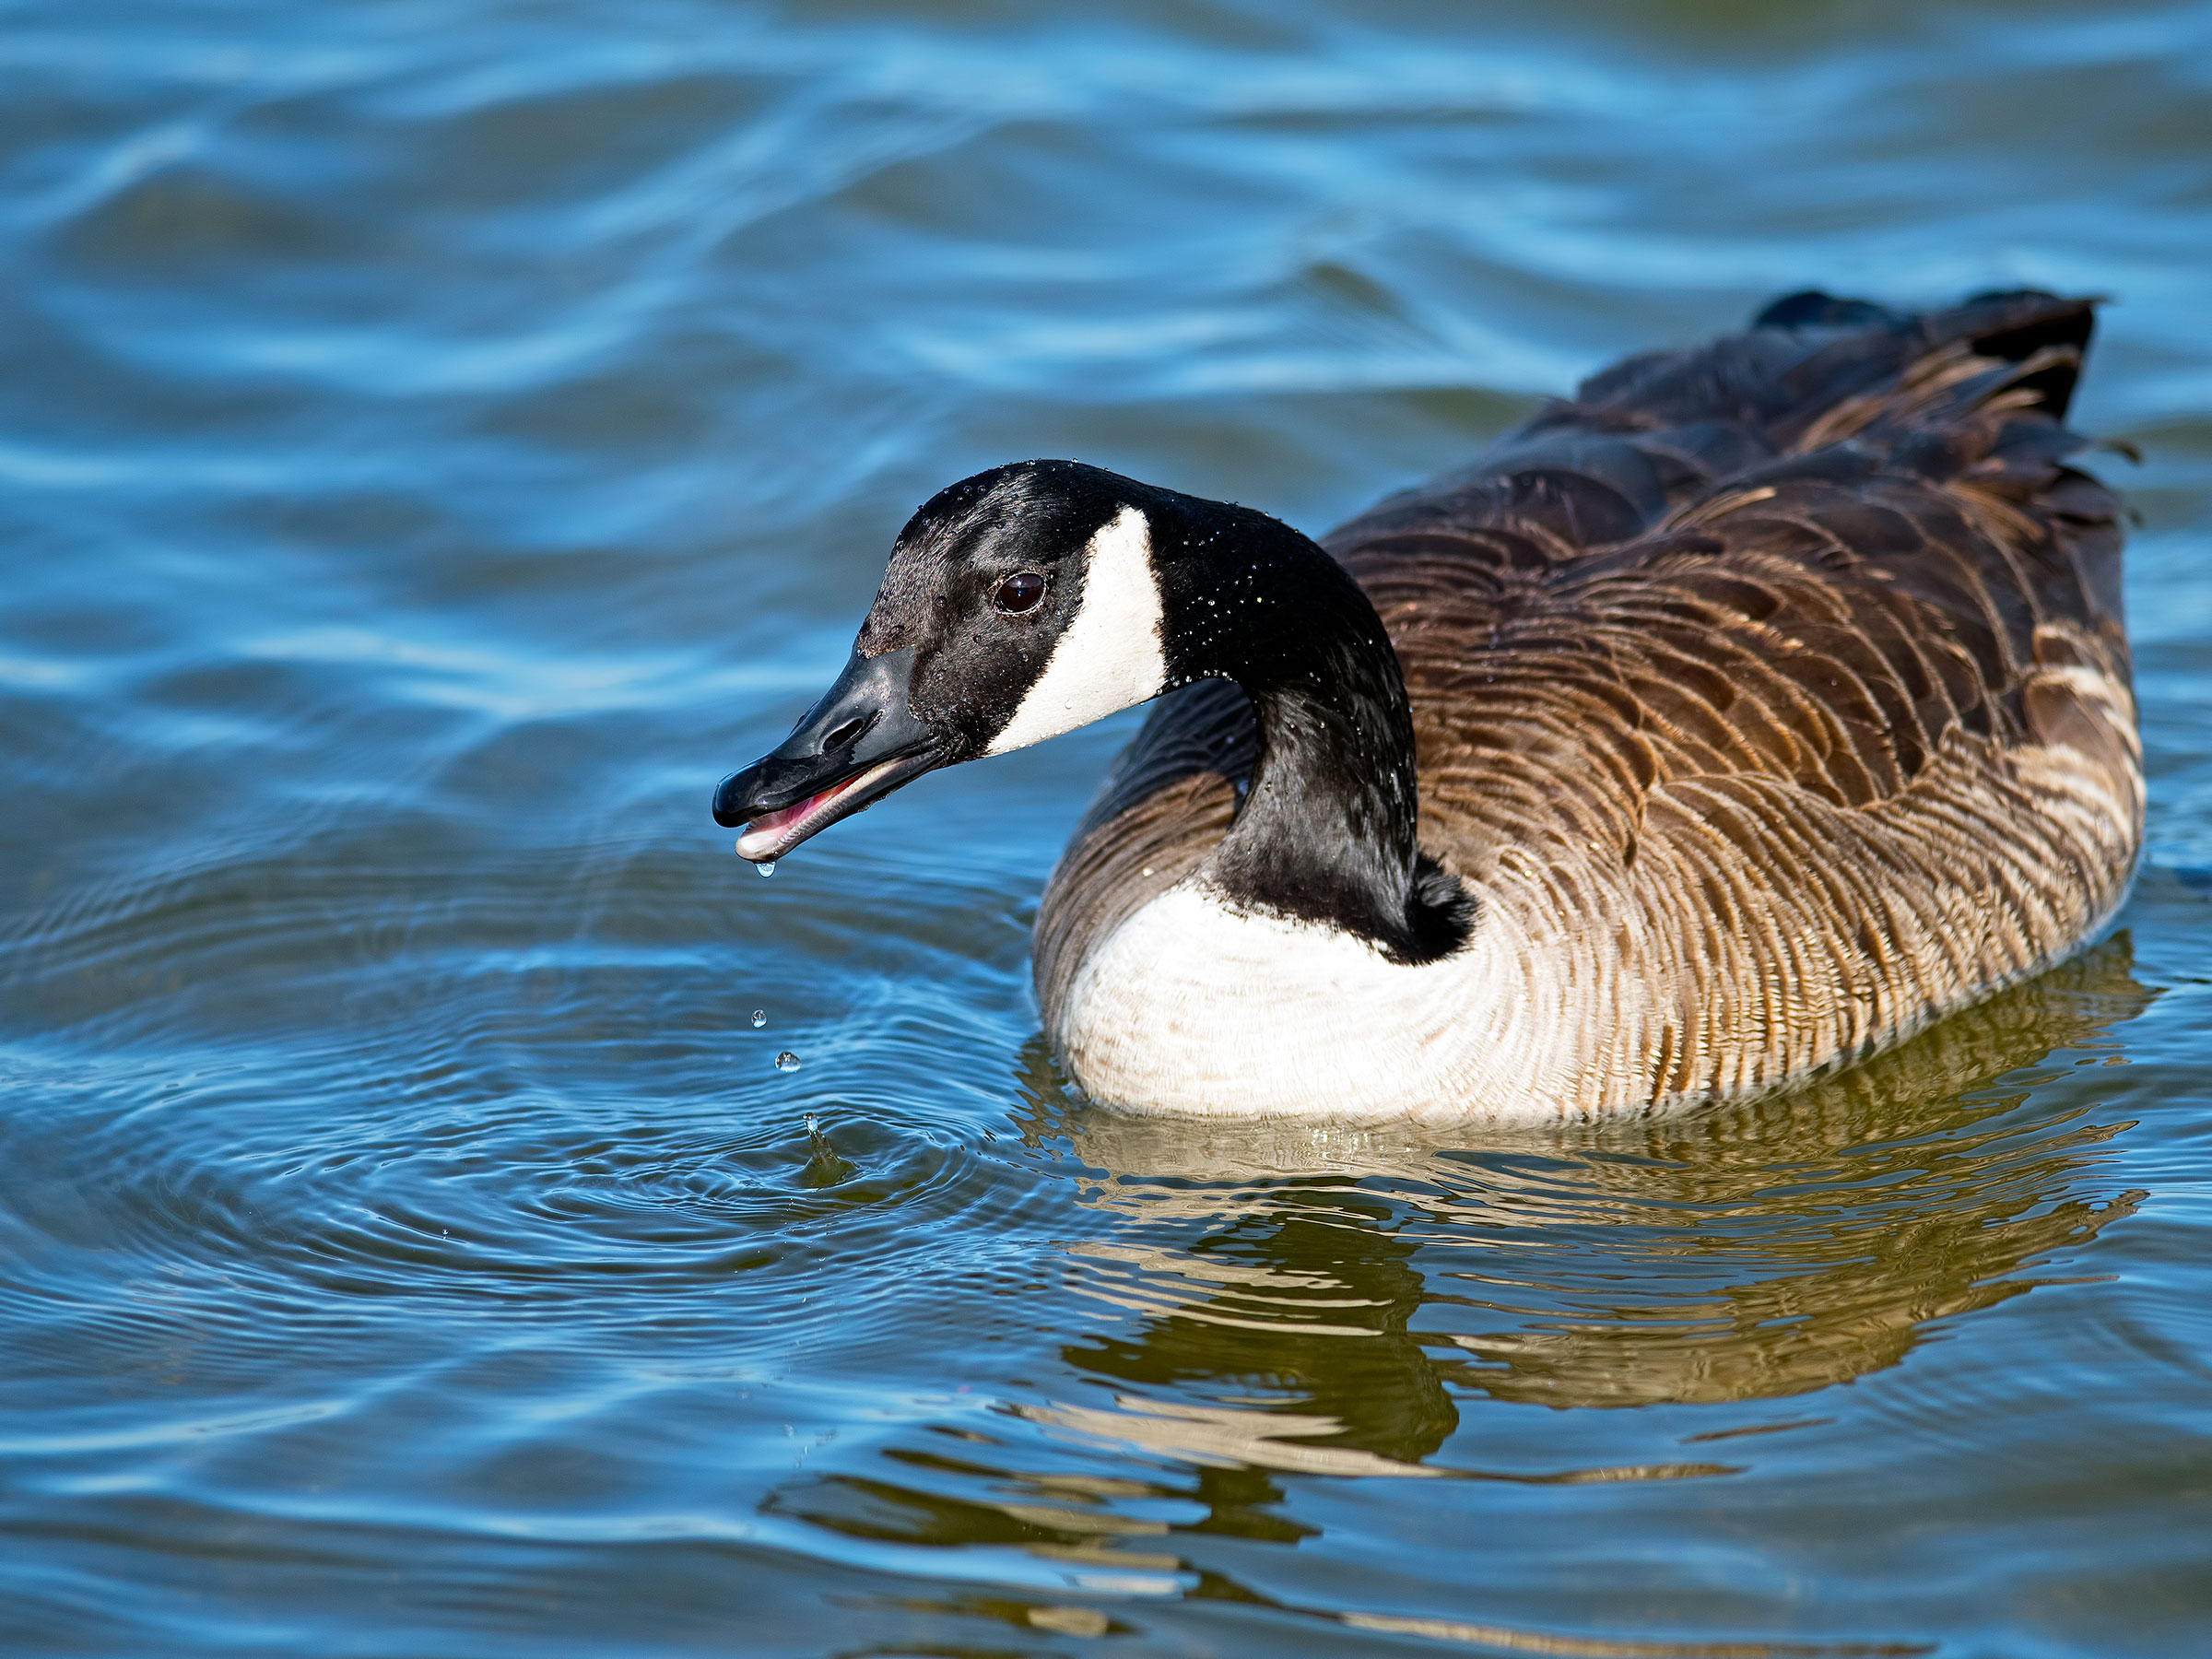 The Canada Goose's reputation for pooping all over the place hurt its chances. Brian Kushner